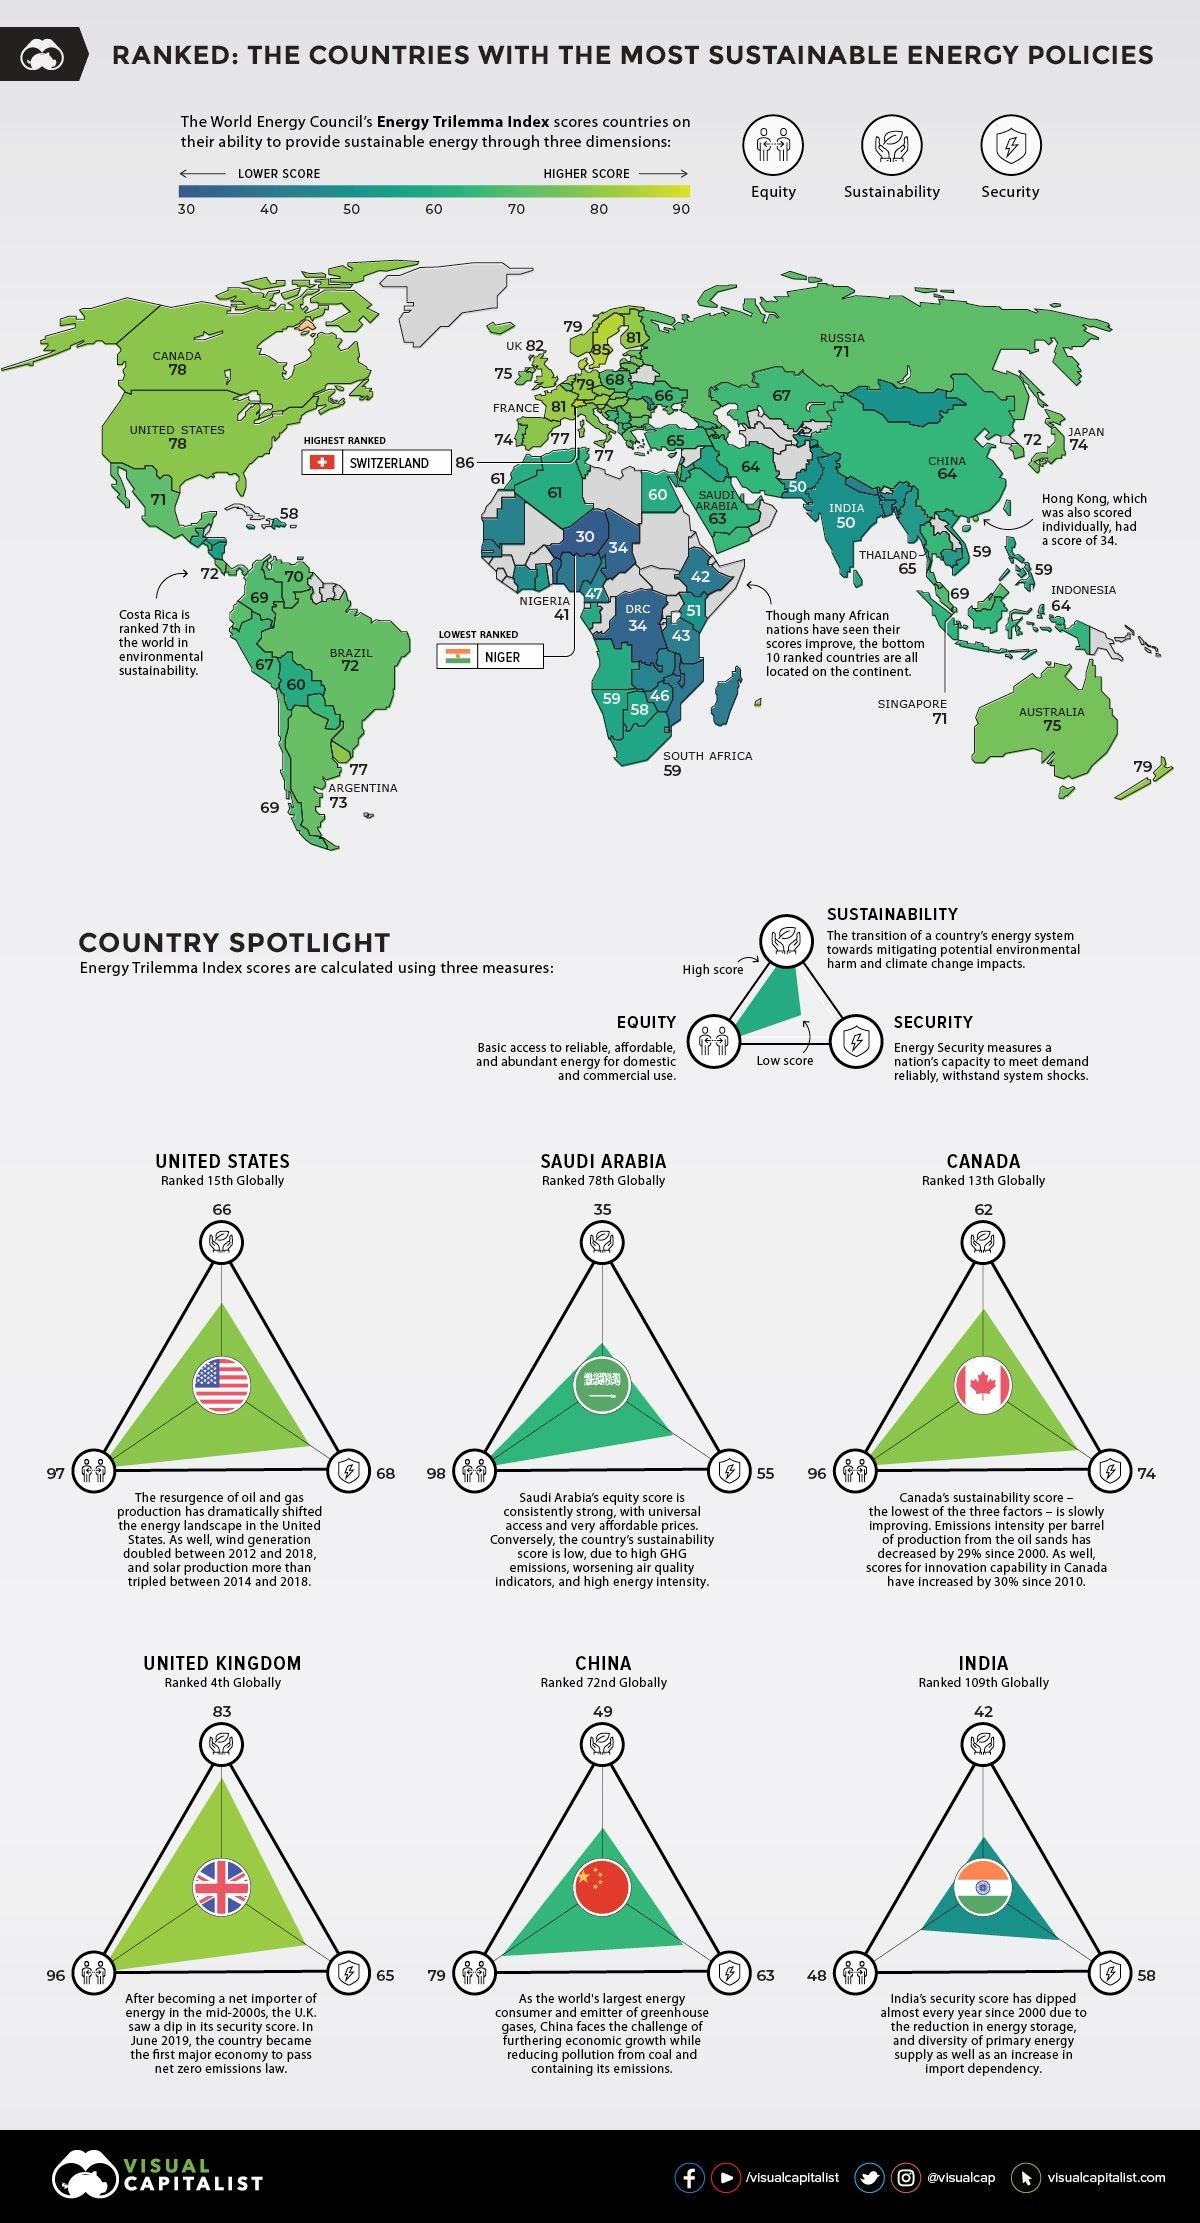 Ranked The Countries With The Most Sustainable Energy Policies #infographic